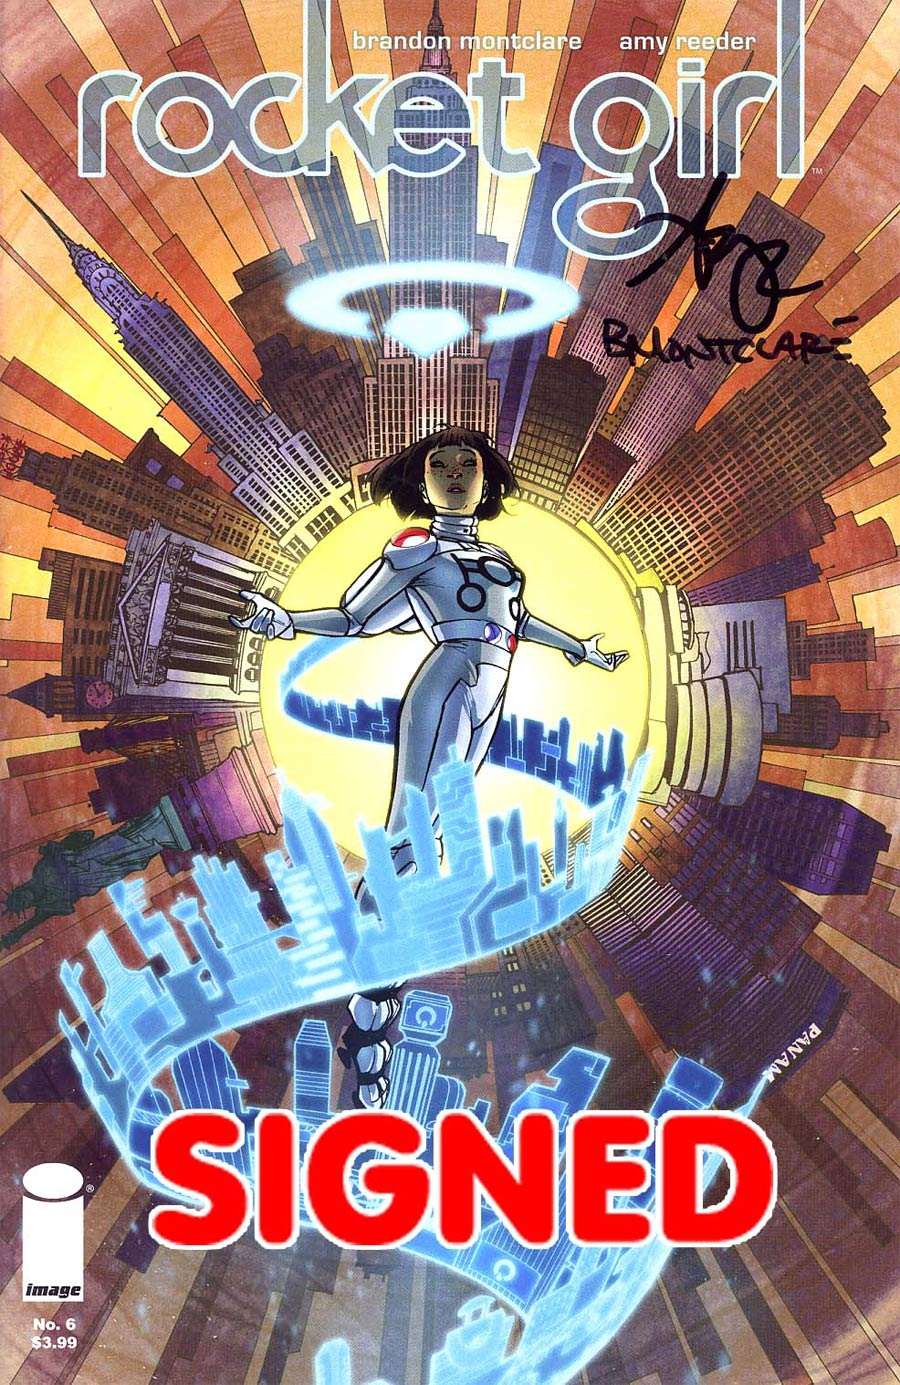 Rocket Girl #6 Cover B Signed By Amy Reeder & Brandon Montclare